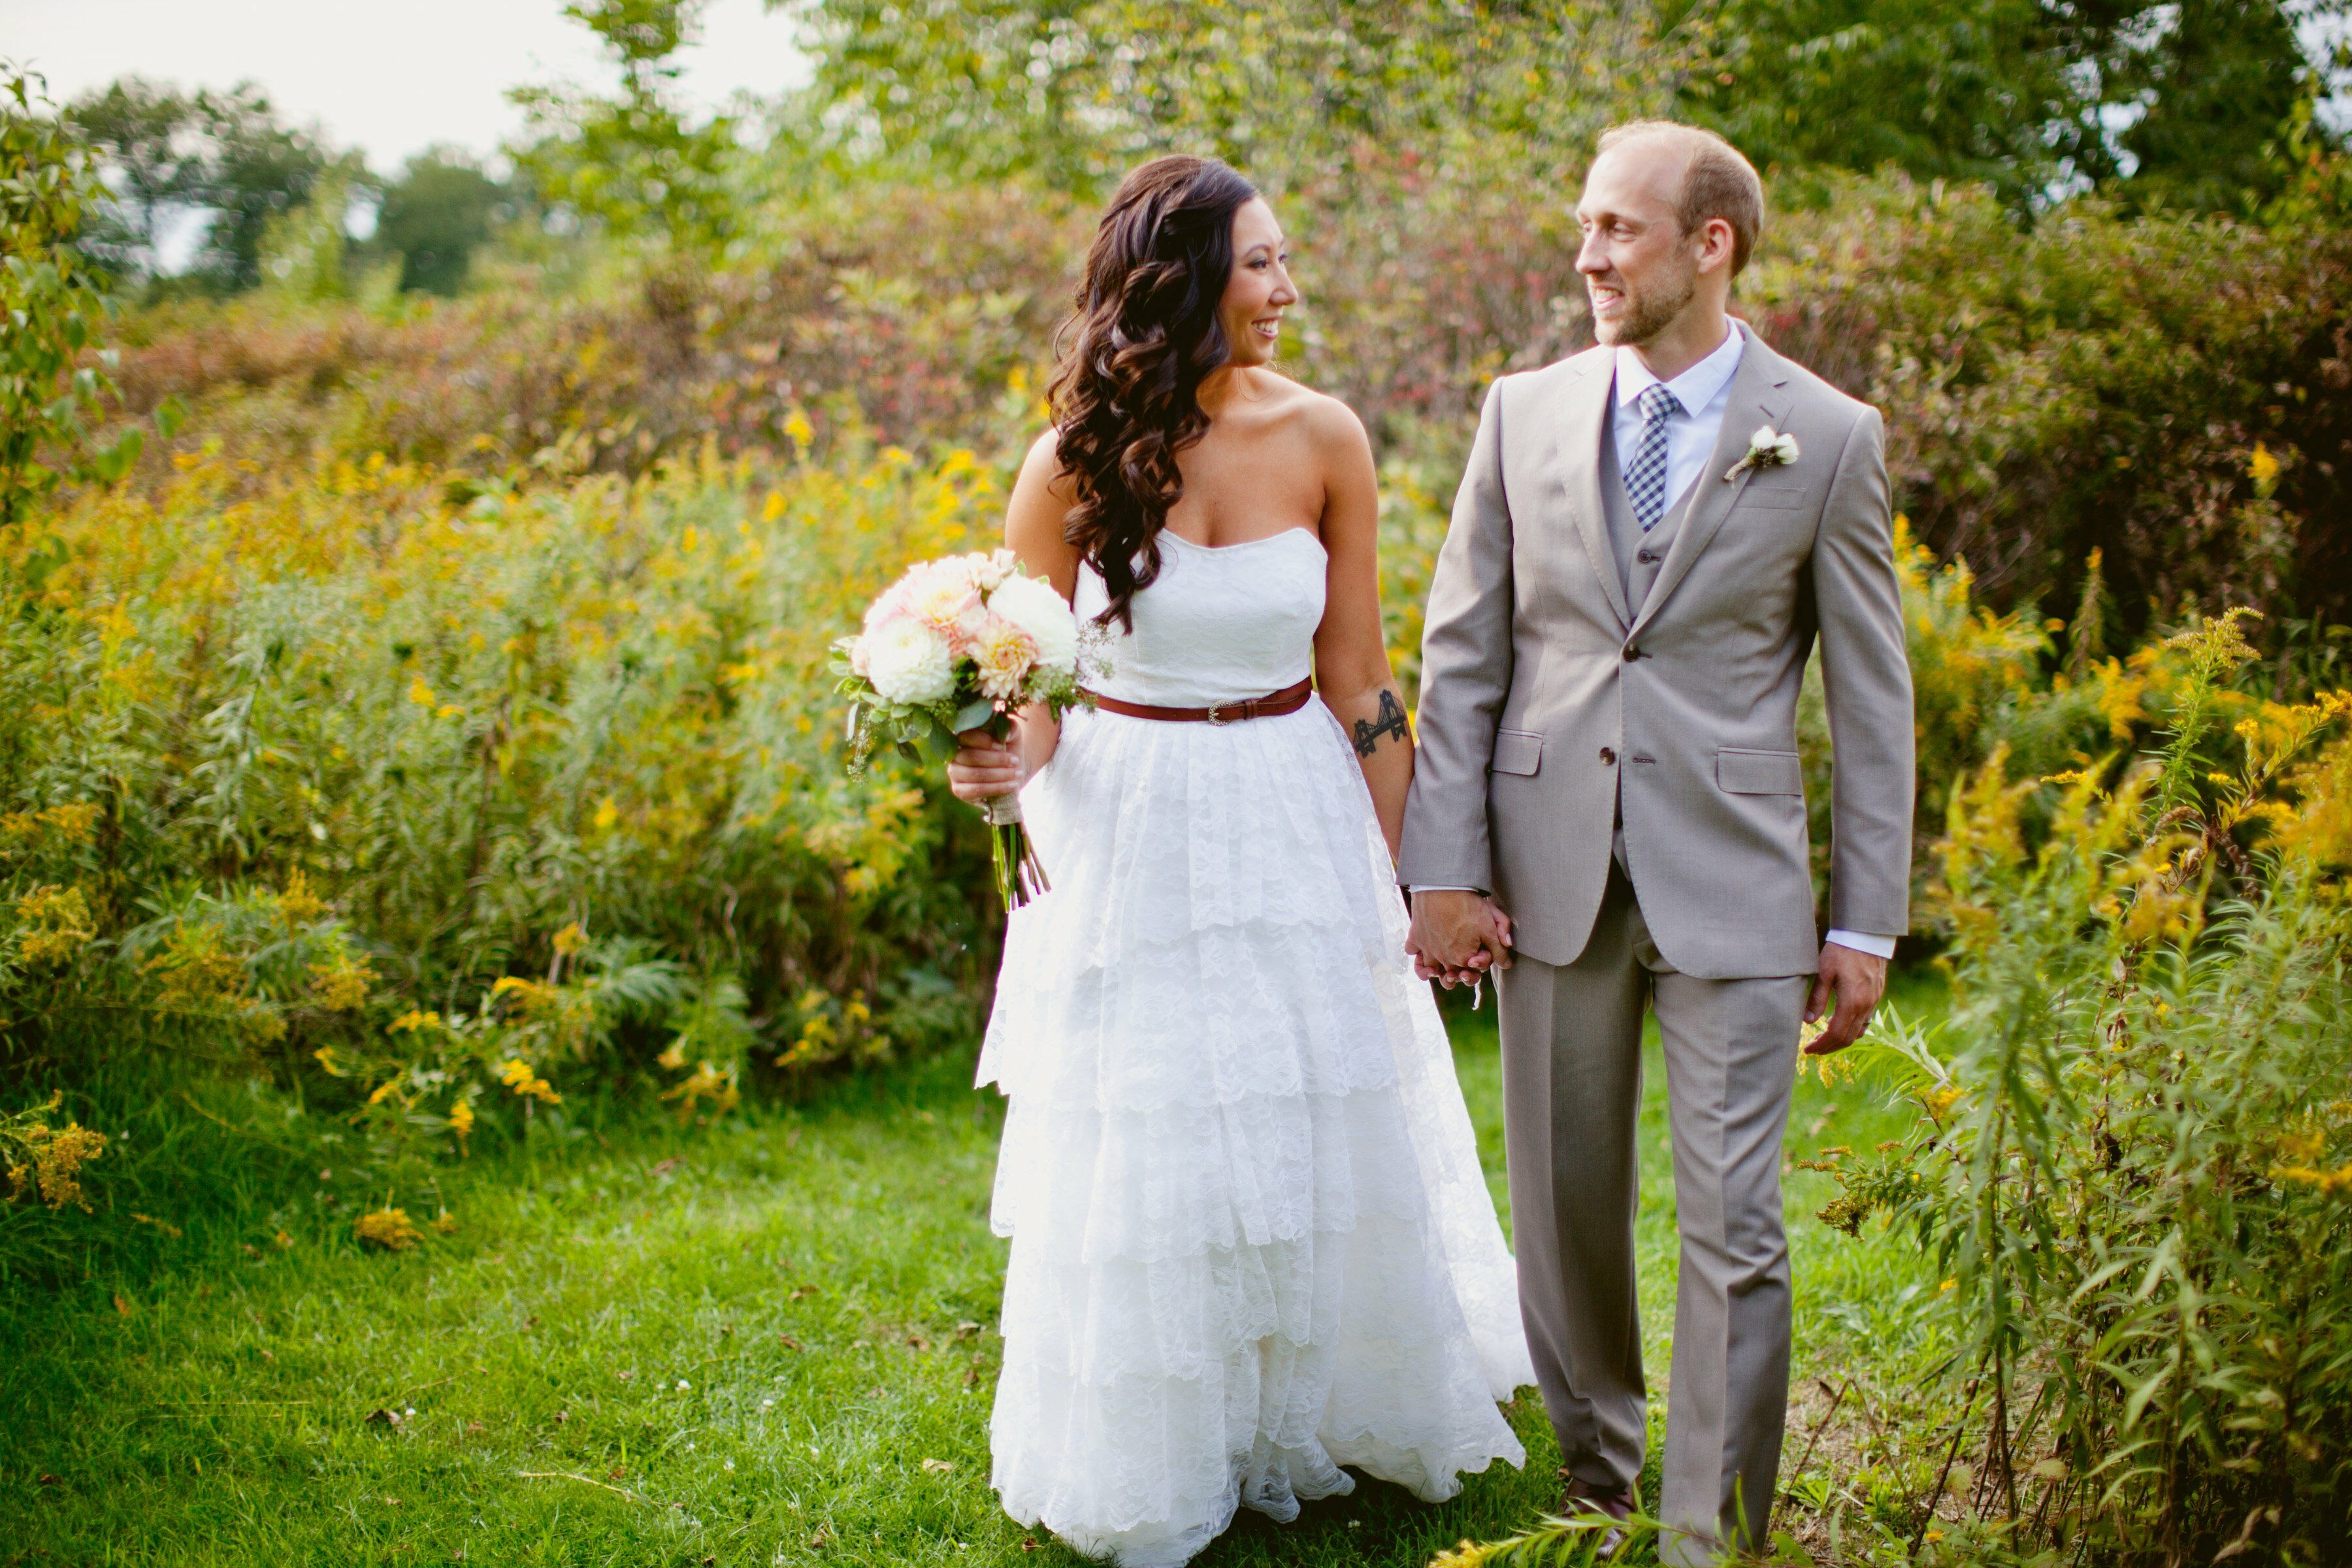 A Succop Conservancy Wedding In Butler, Pennsylvania. Interesting Band Wedding Rings. Ting Engagement Rings. Paloma Engagement Rings. Gift Rings. Willow Wood Wedding Rings. Cincin Tunangan Engagement Rings. Vvs Diamond Engagement Rings. Elf Wedding Rings